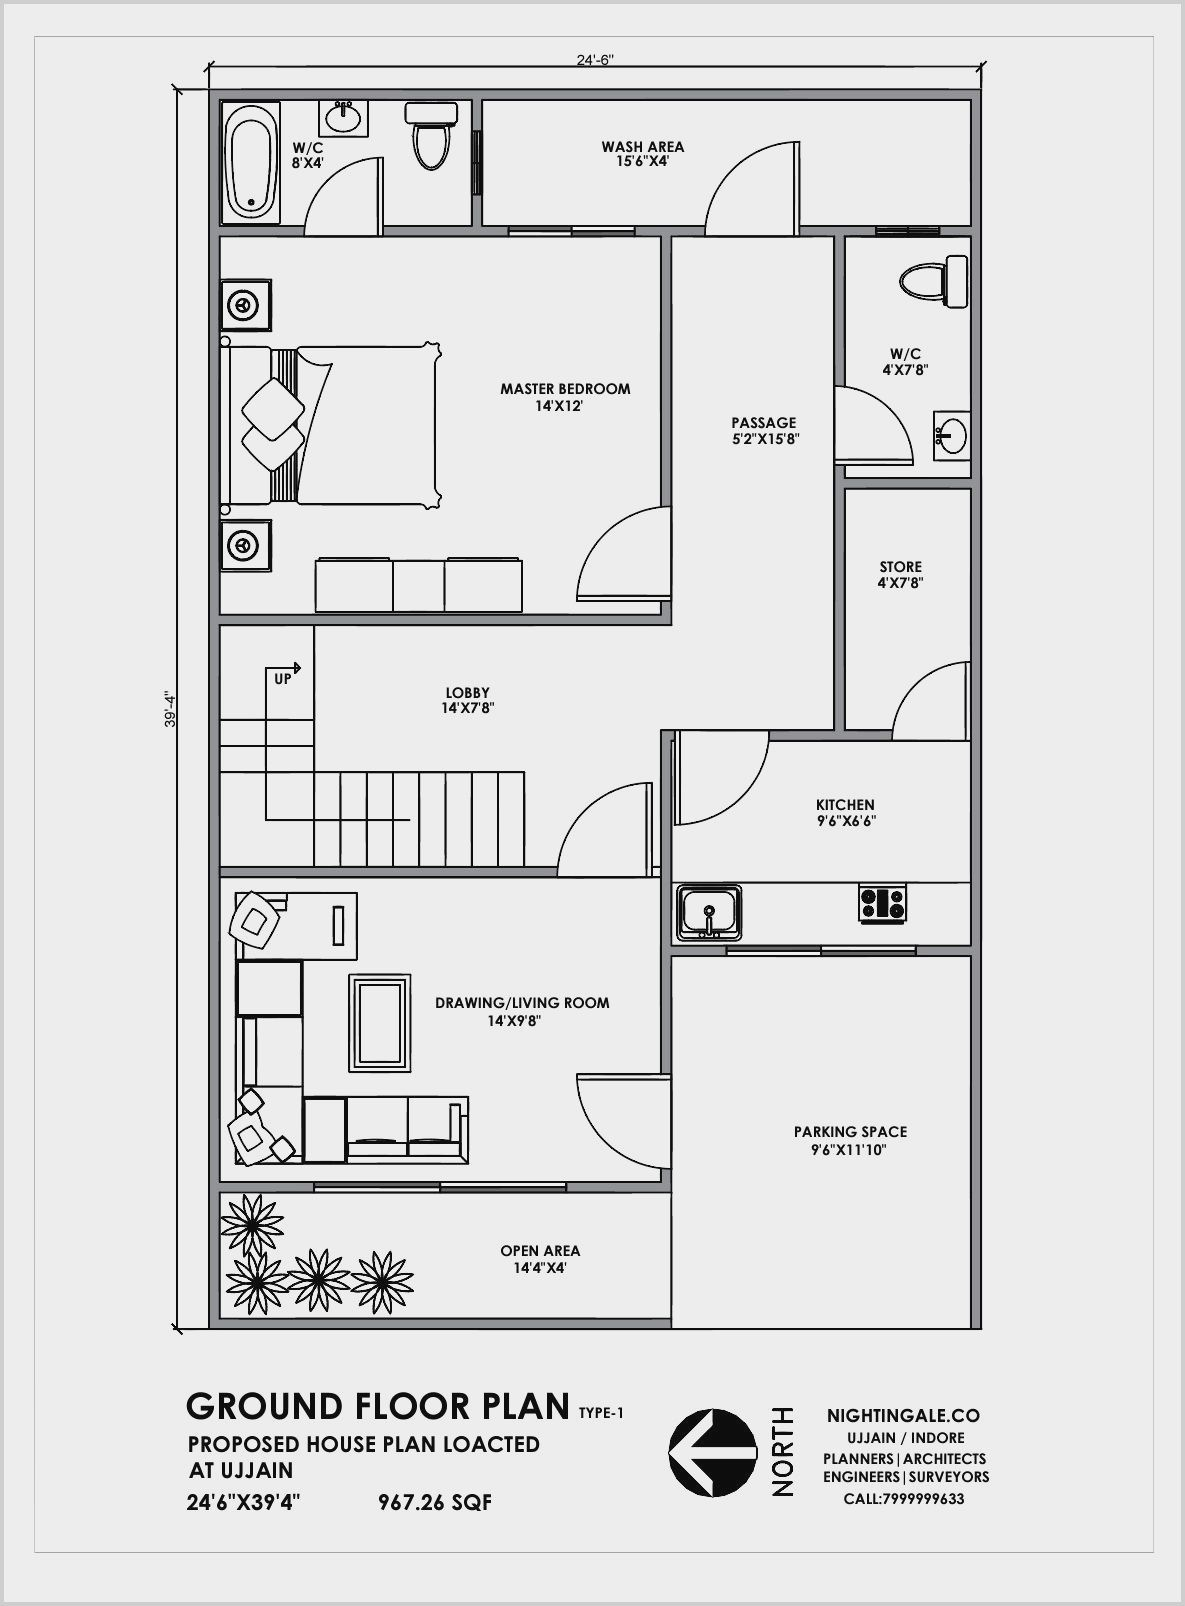 24 X 26 Master Bedroom Blueprint Ideas In 2020 20x30 House Plans Indian House Plans 20x40 House Plans